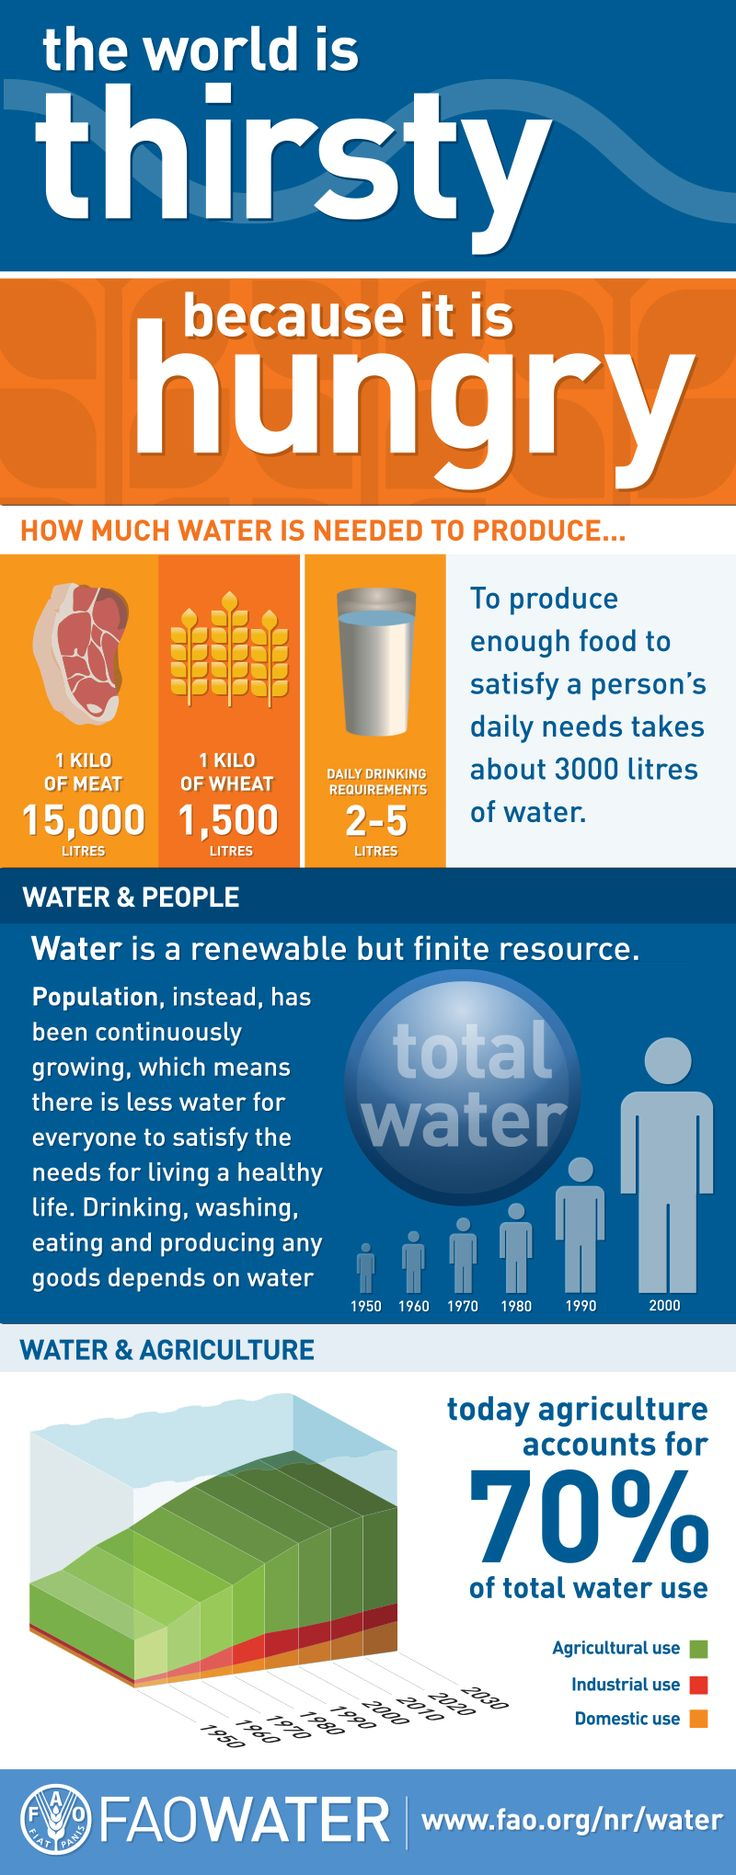 The world is thirsty because it is hungry - Did you know to produce enough food to satisfy a person's daily needs takes about 3000 litres of water?